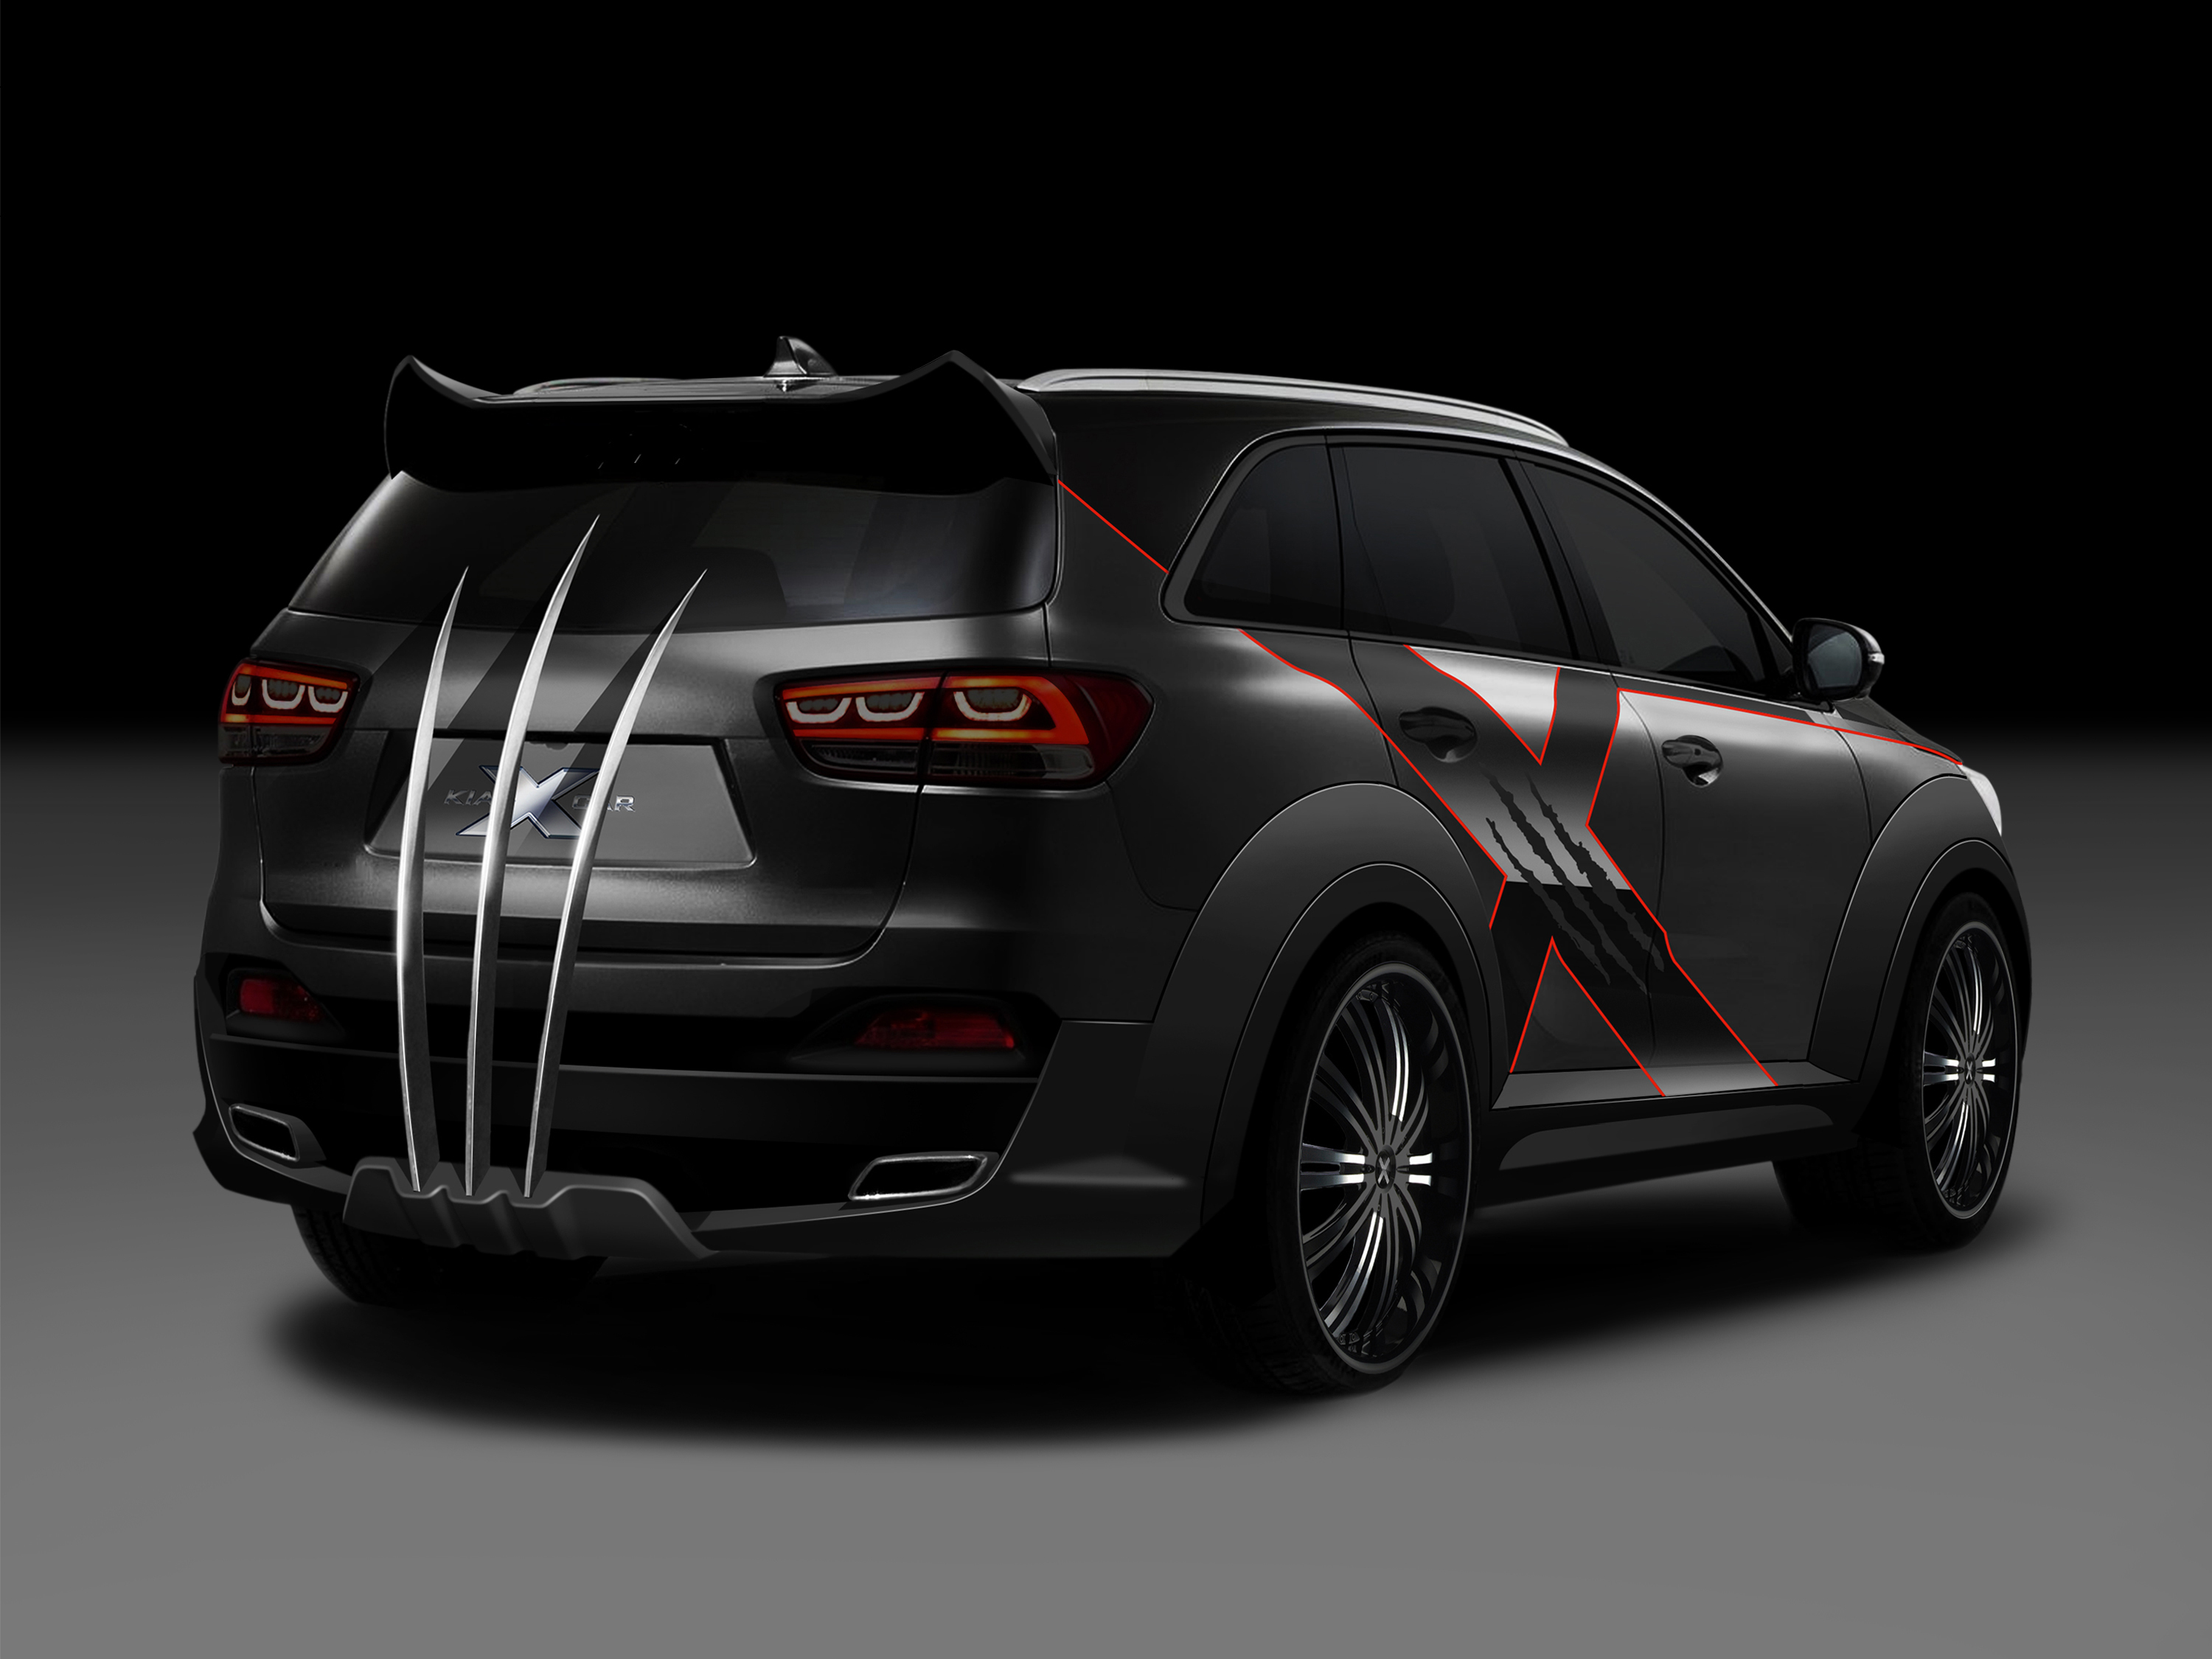 check out kia s wolverine car geektyrant. Black Bedroom Furniture Sets. Home Design Ideas